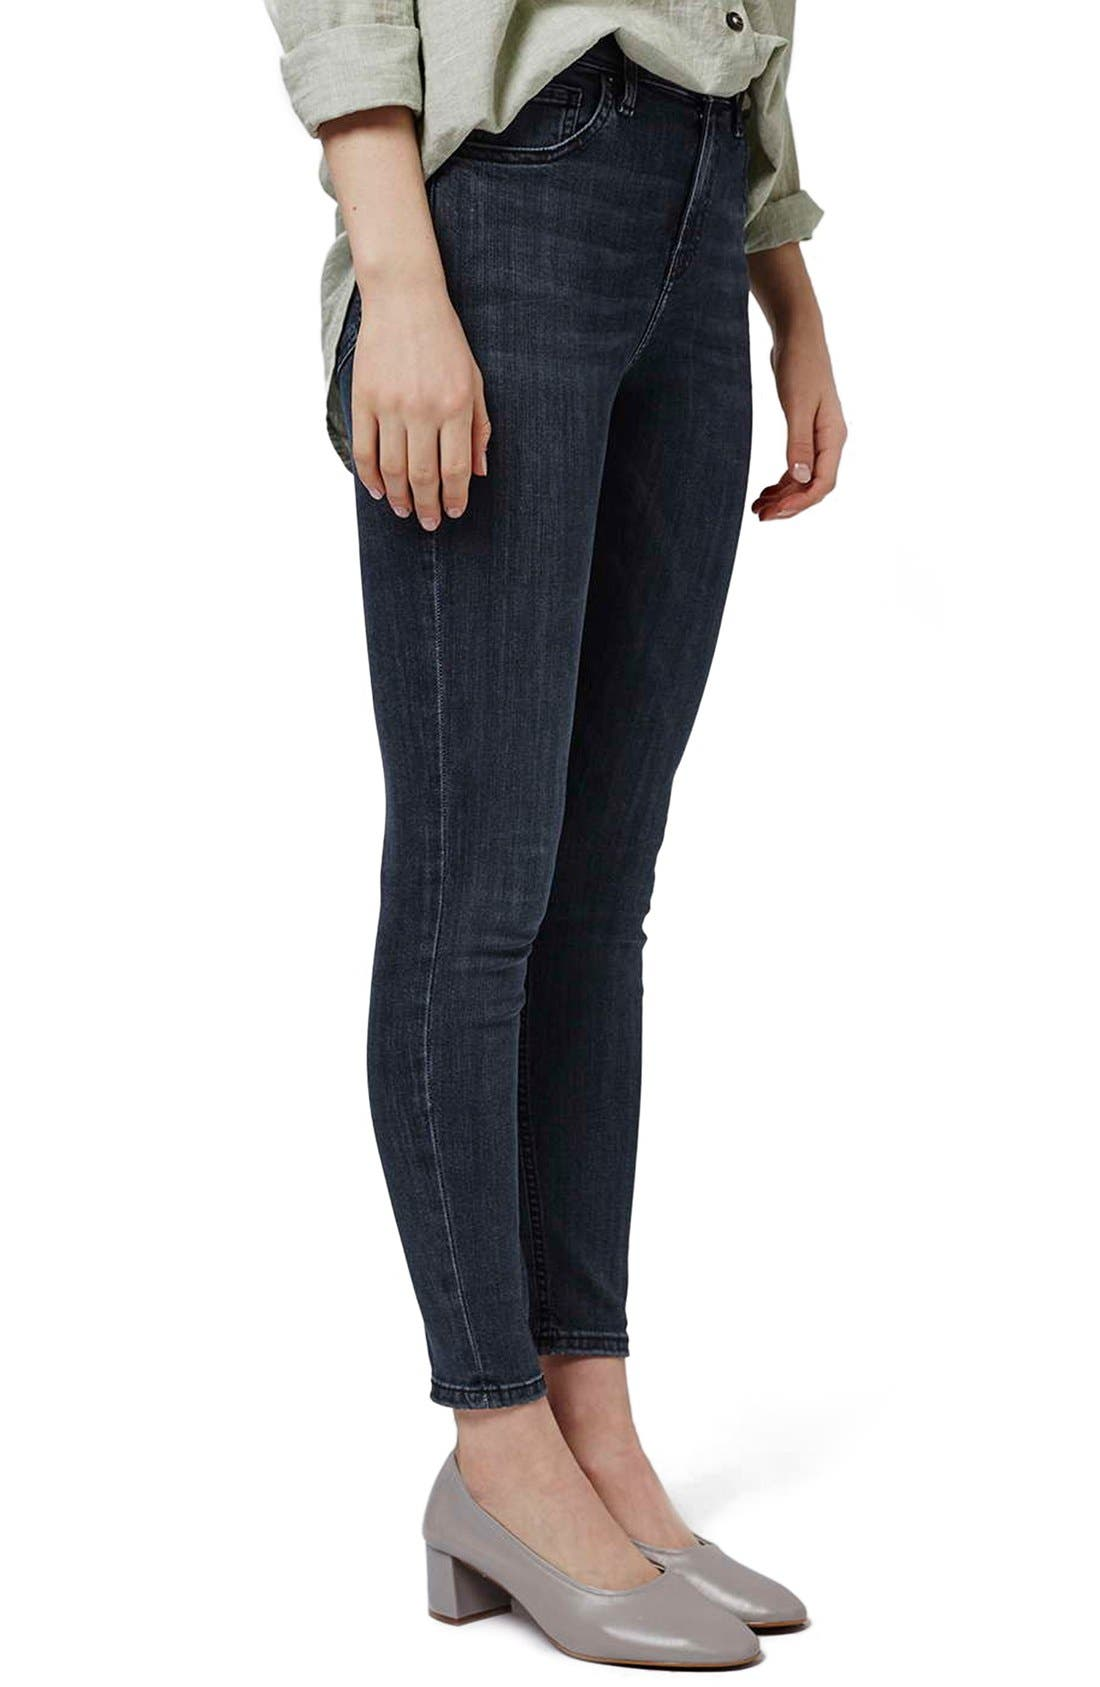 Alternate Image 1 Selected - Topshop 'Jamie' High Rise Skinny Jeans (Petite)